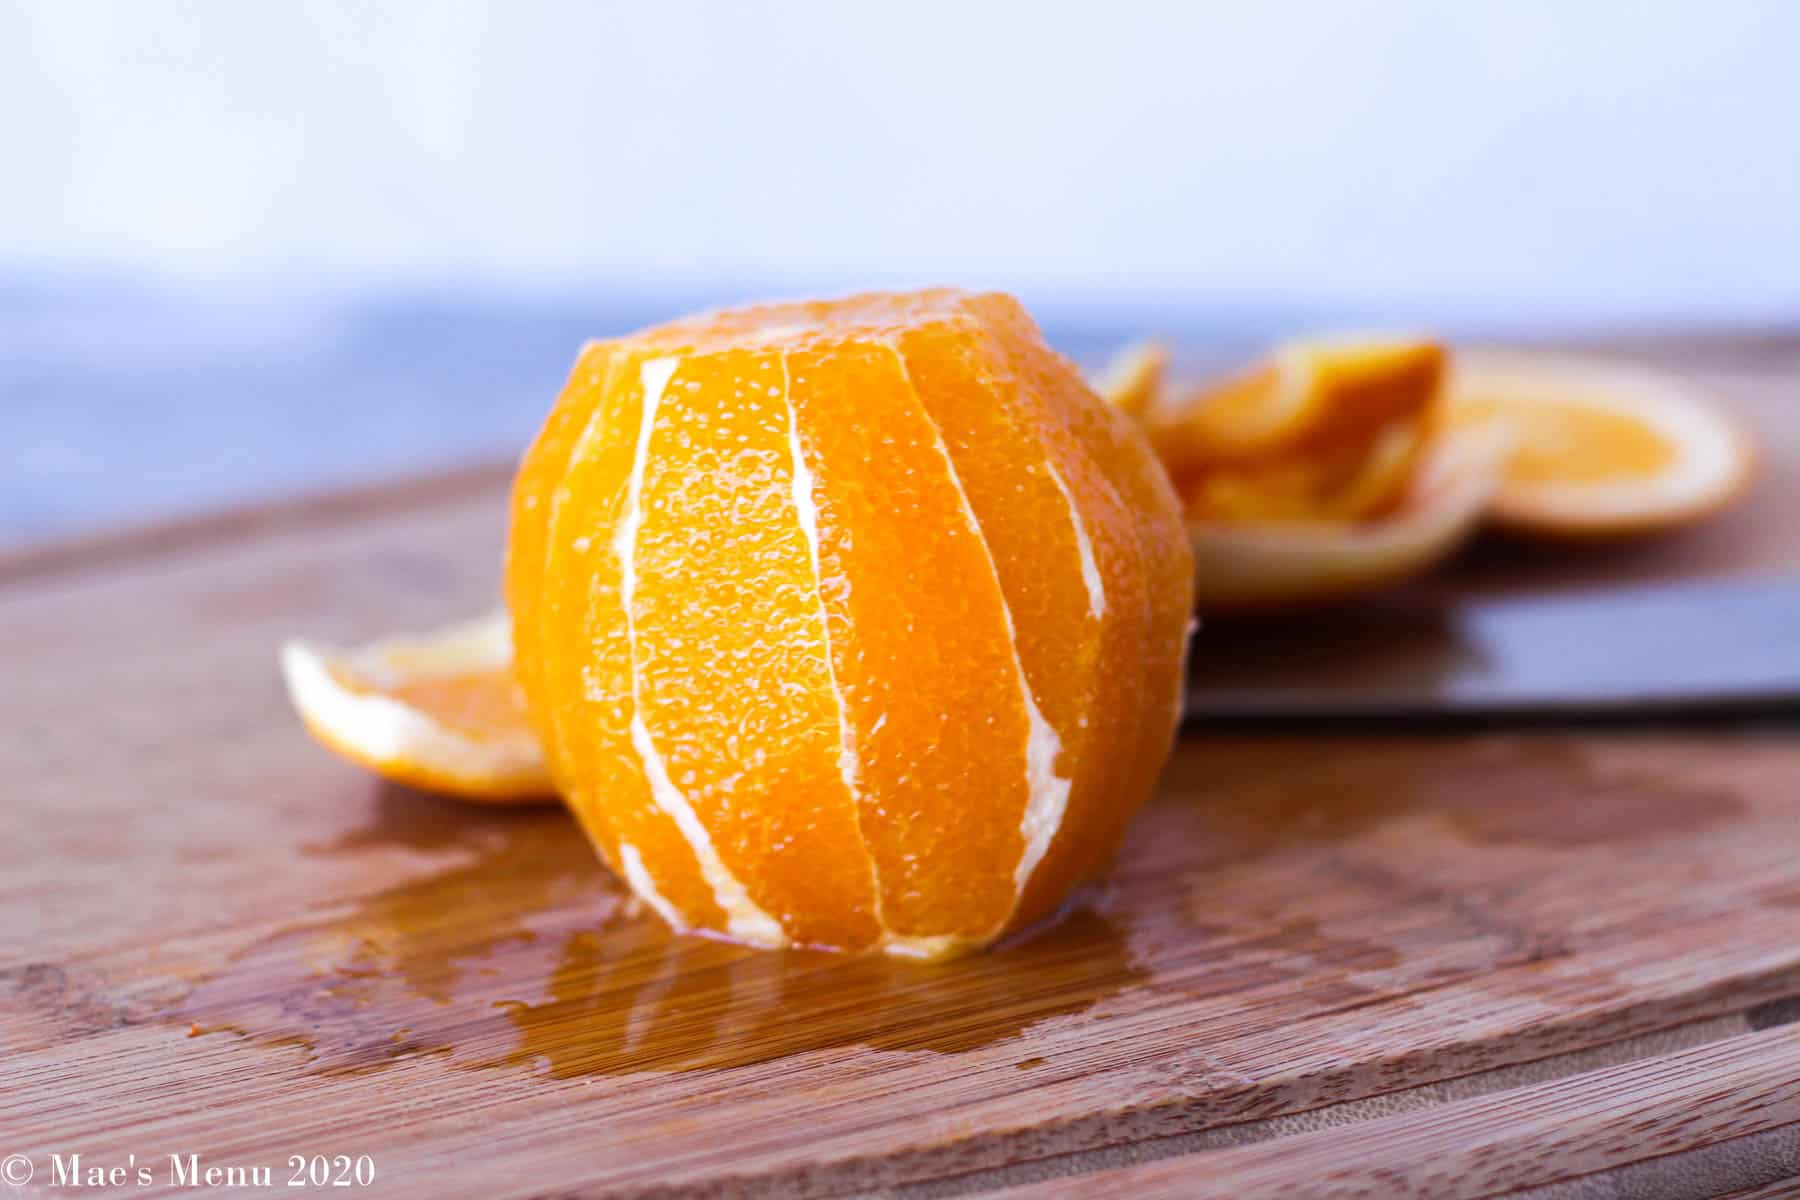 An orange with the peel sliced off